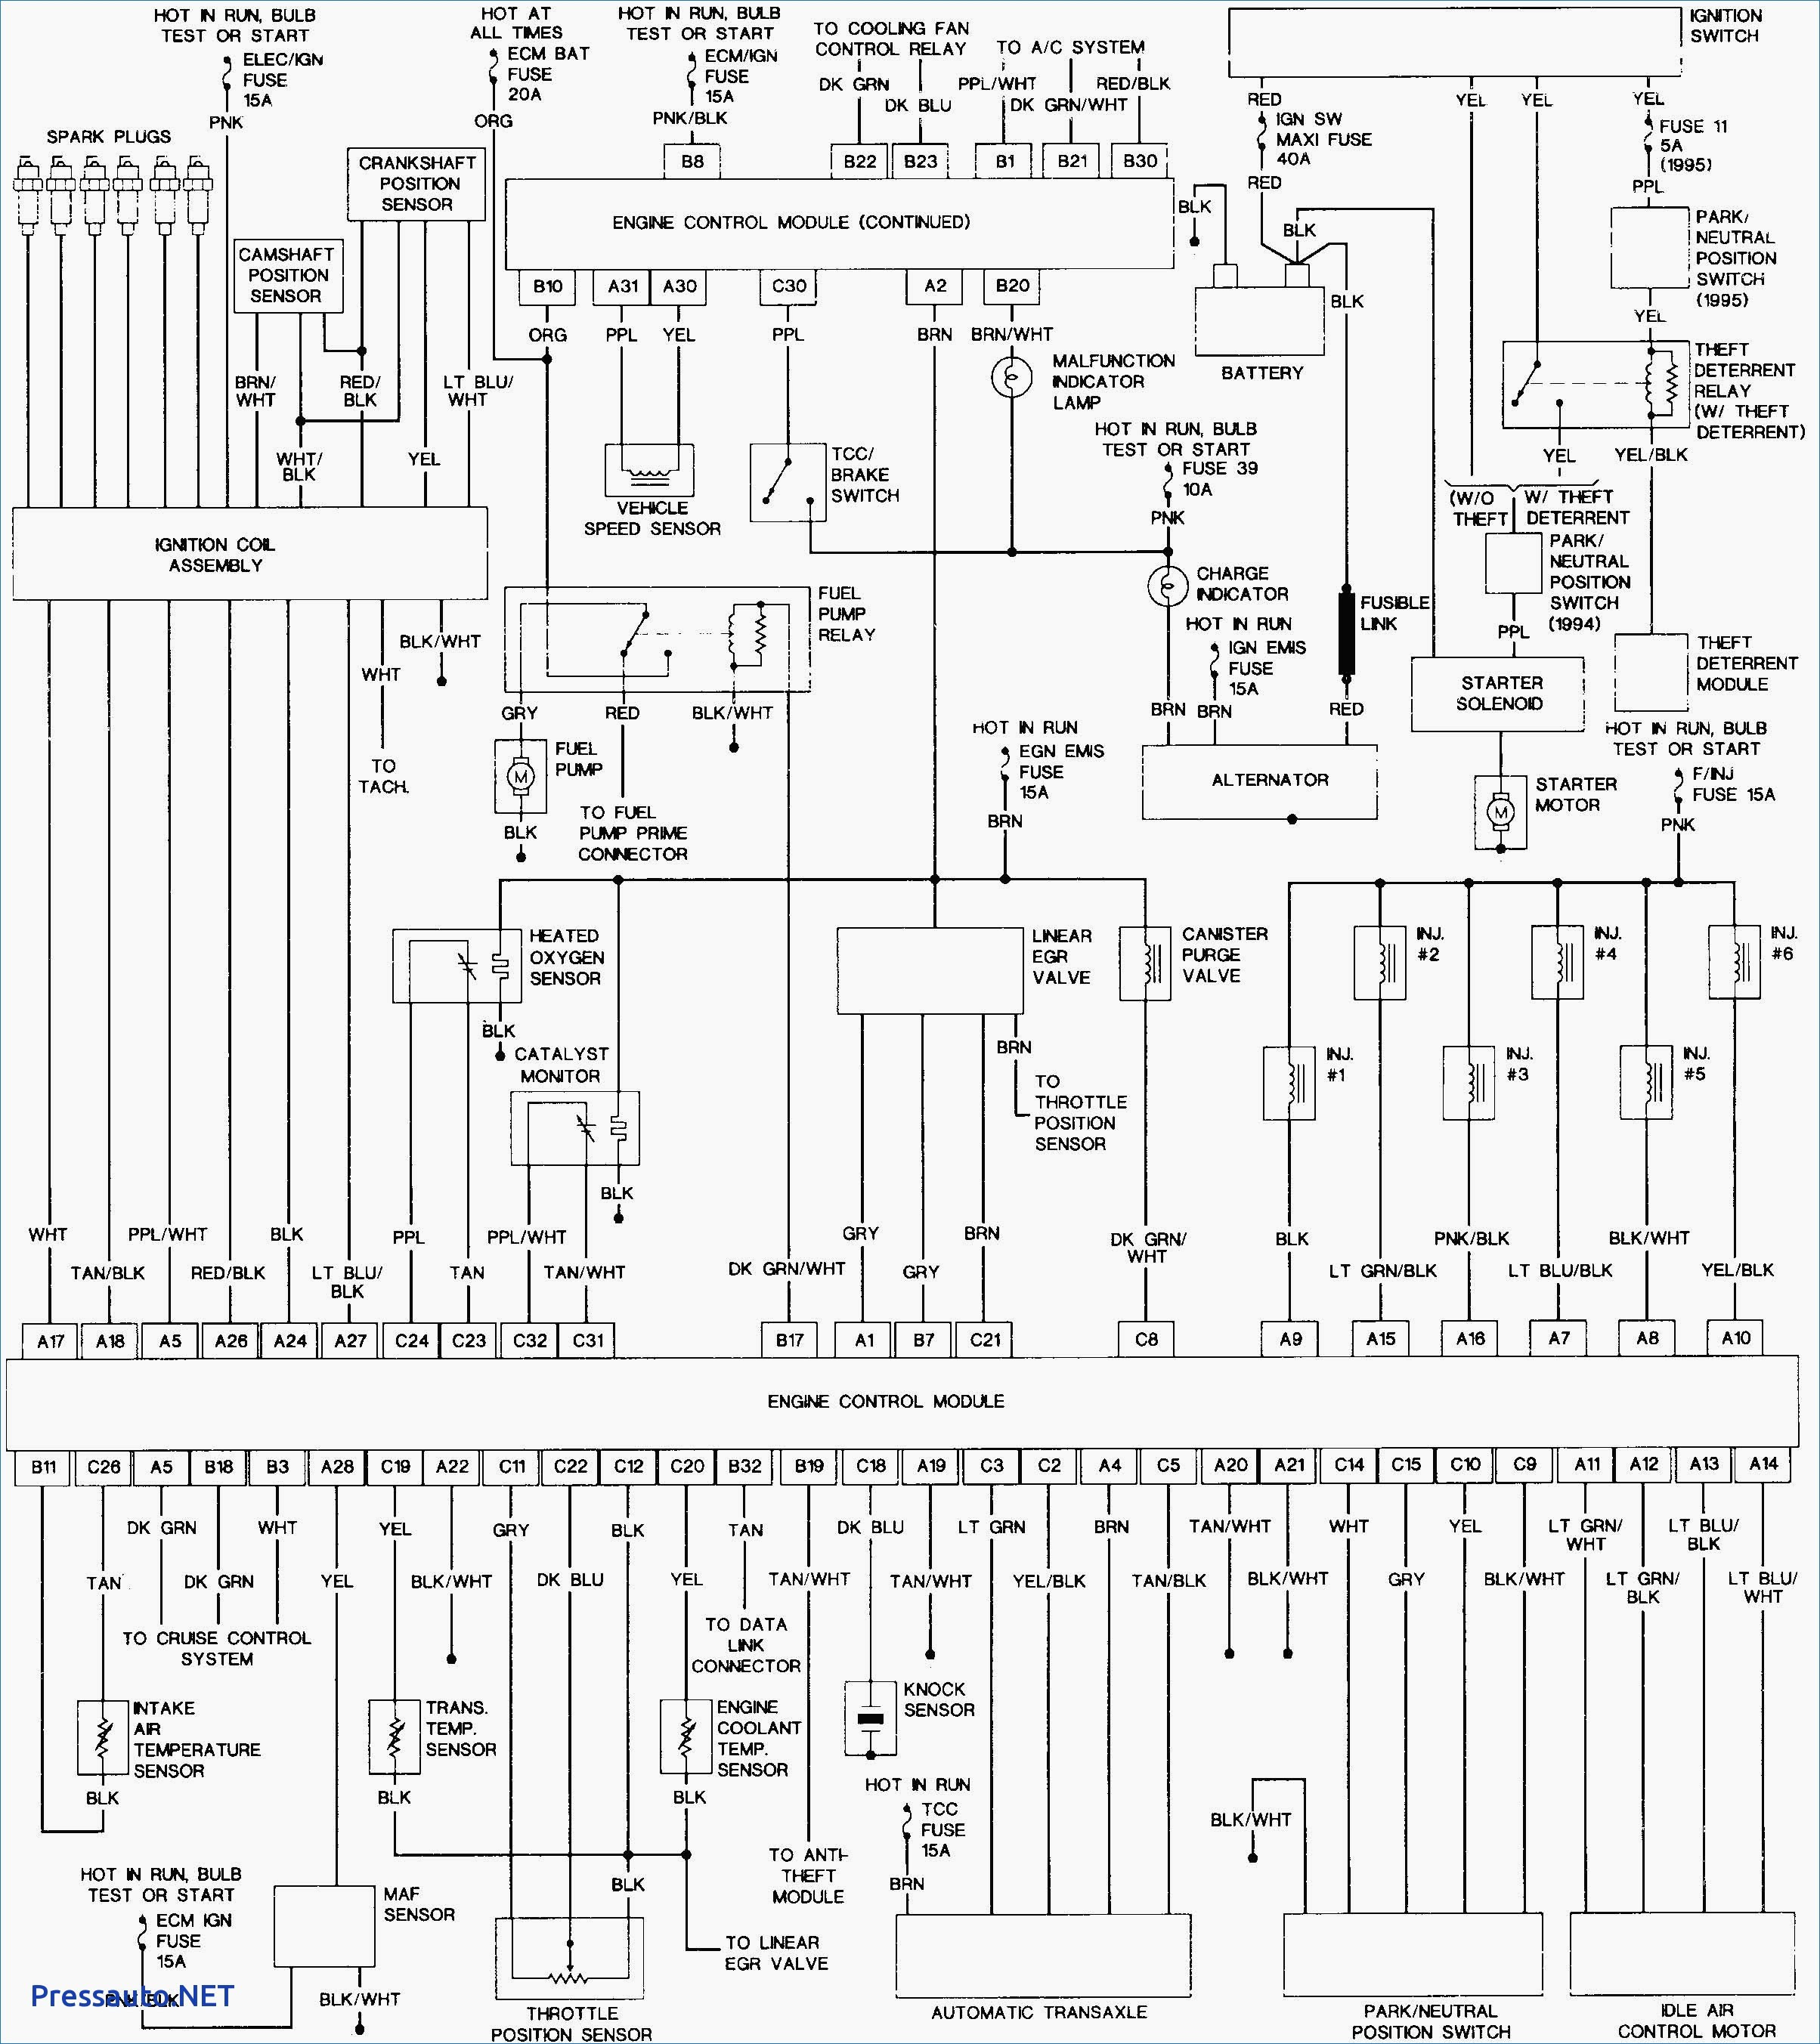 2004 Vw Jetta Wiring Diagram